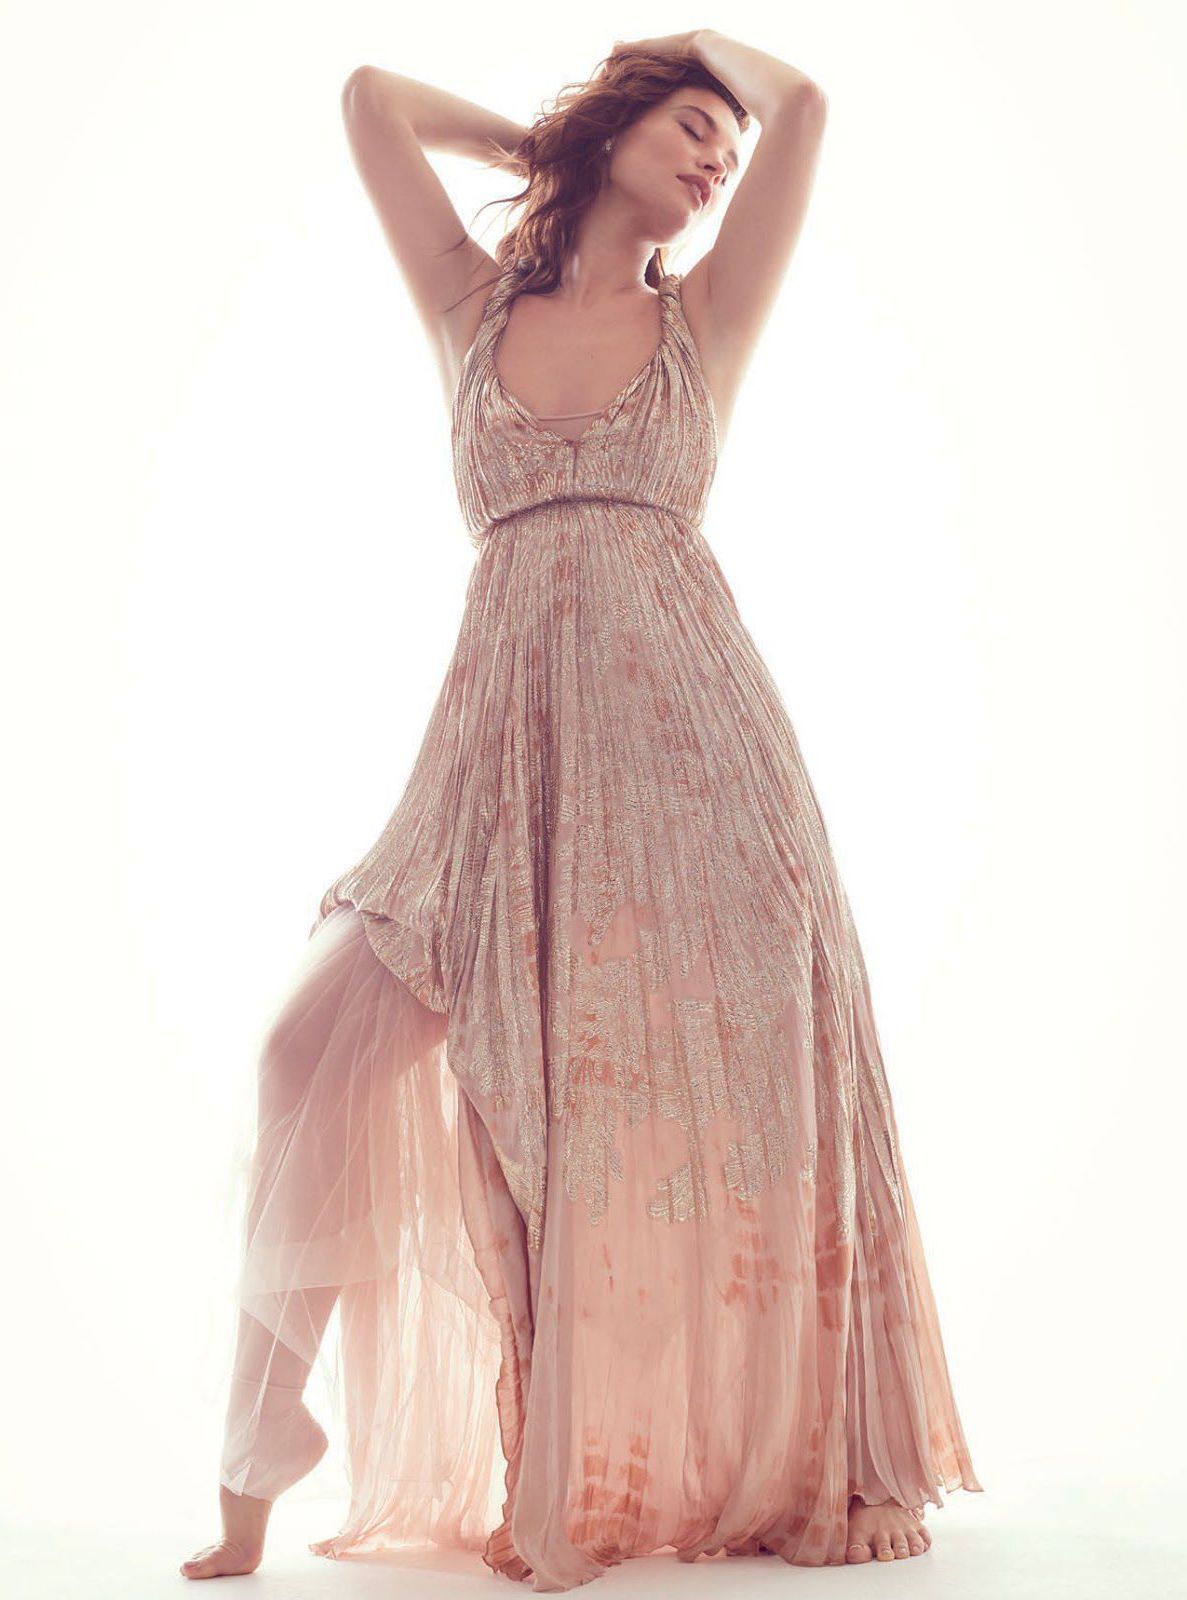 Lily James in ancient dress for Harpers Bazaar